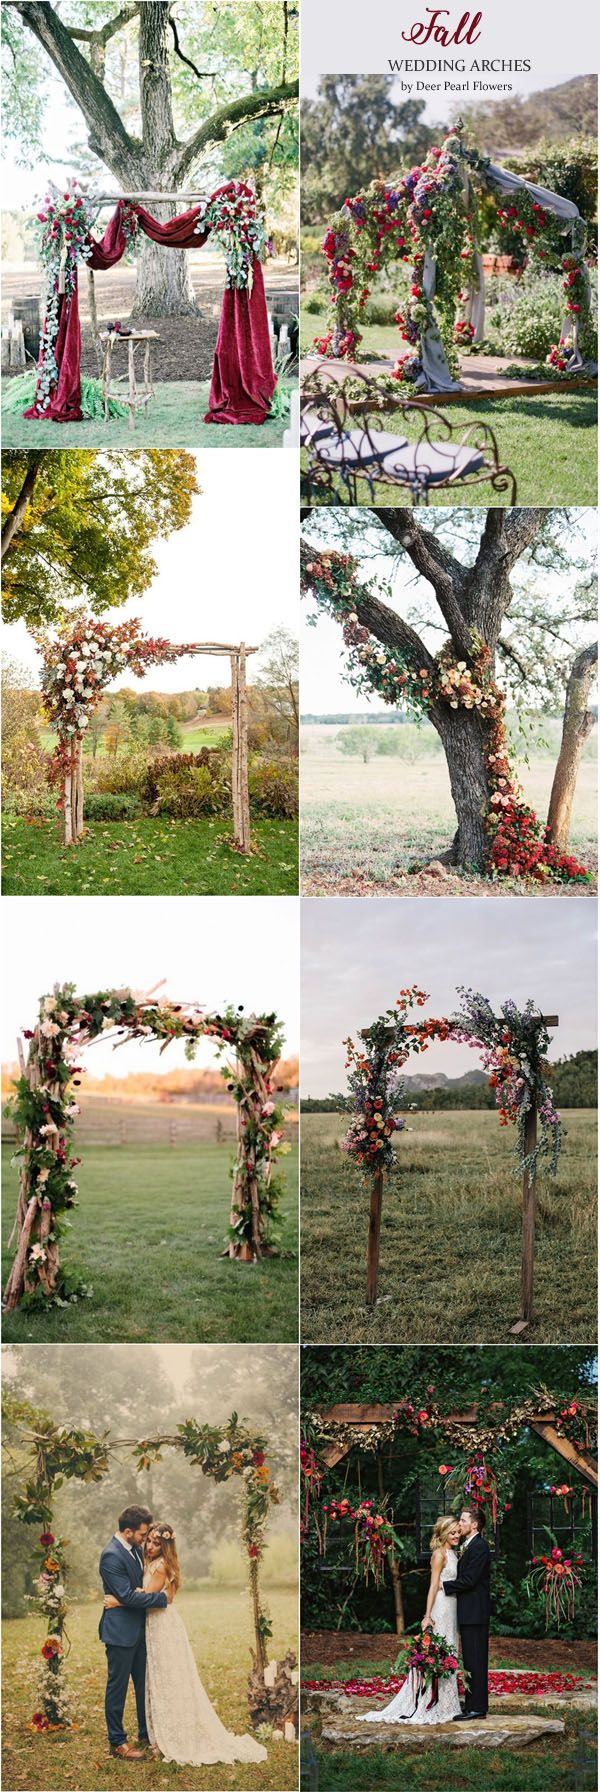 Fall wedding arches & Autumn alter wedding ideas